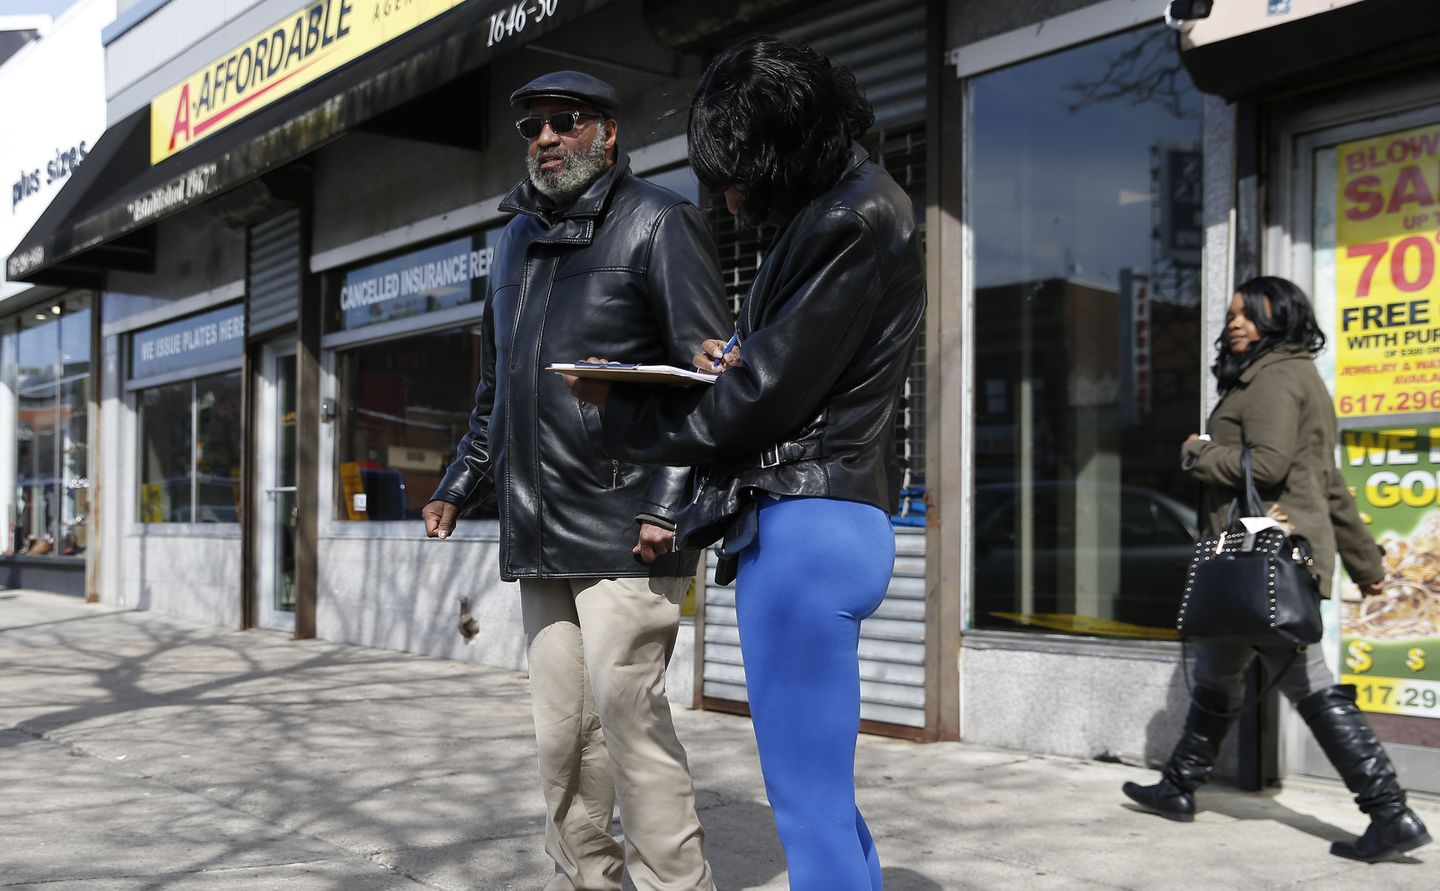 In the heart of Mattapan Square, a man collected signatures for a petition on behalf of Tito Jackson, who is seeking to open the commercial district's first marijuana store.